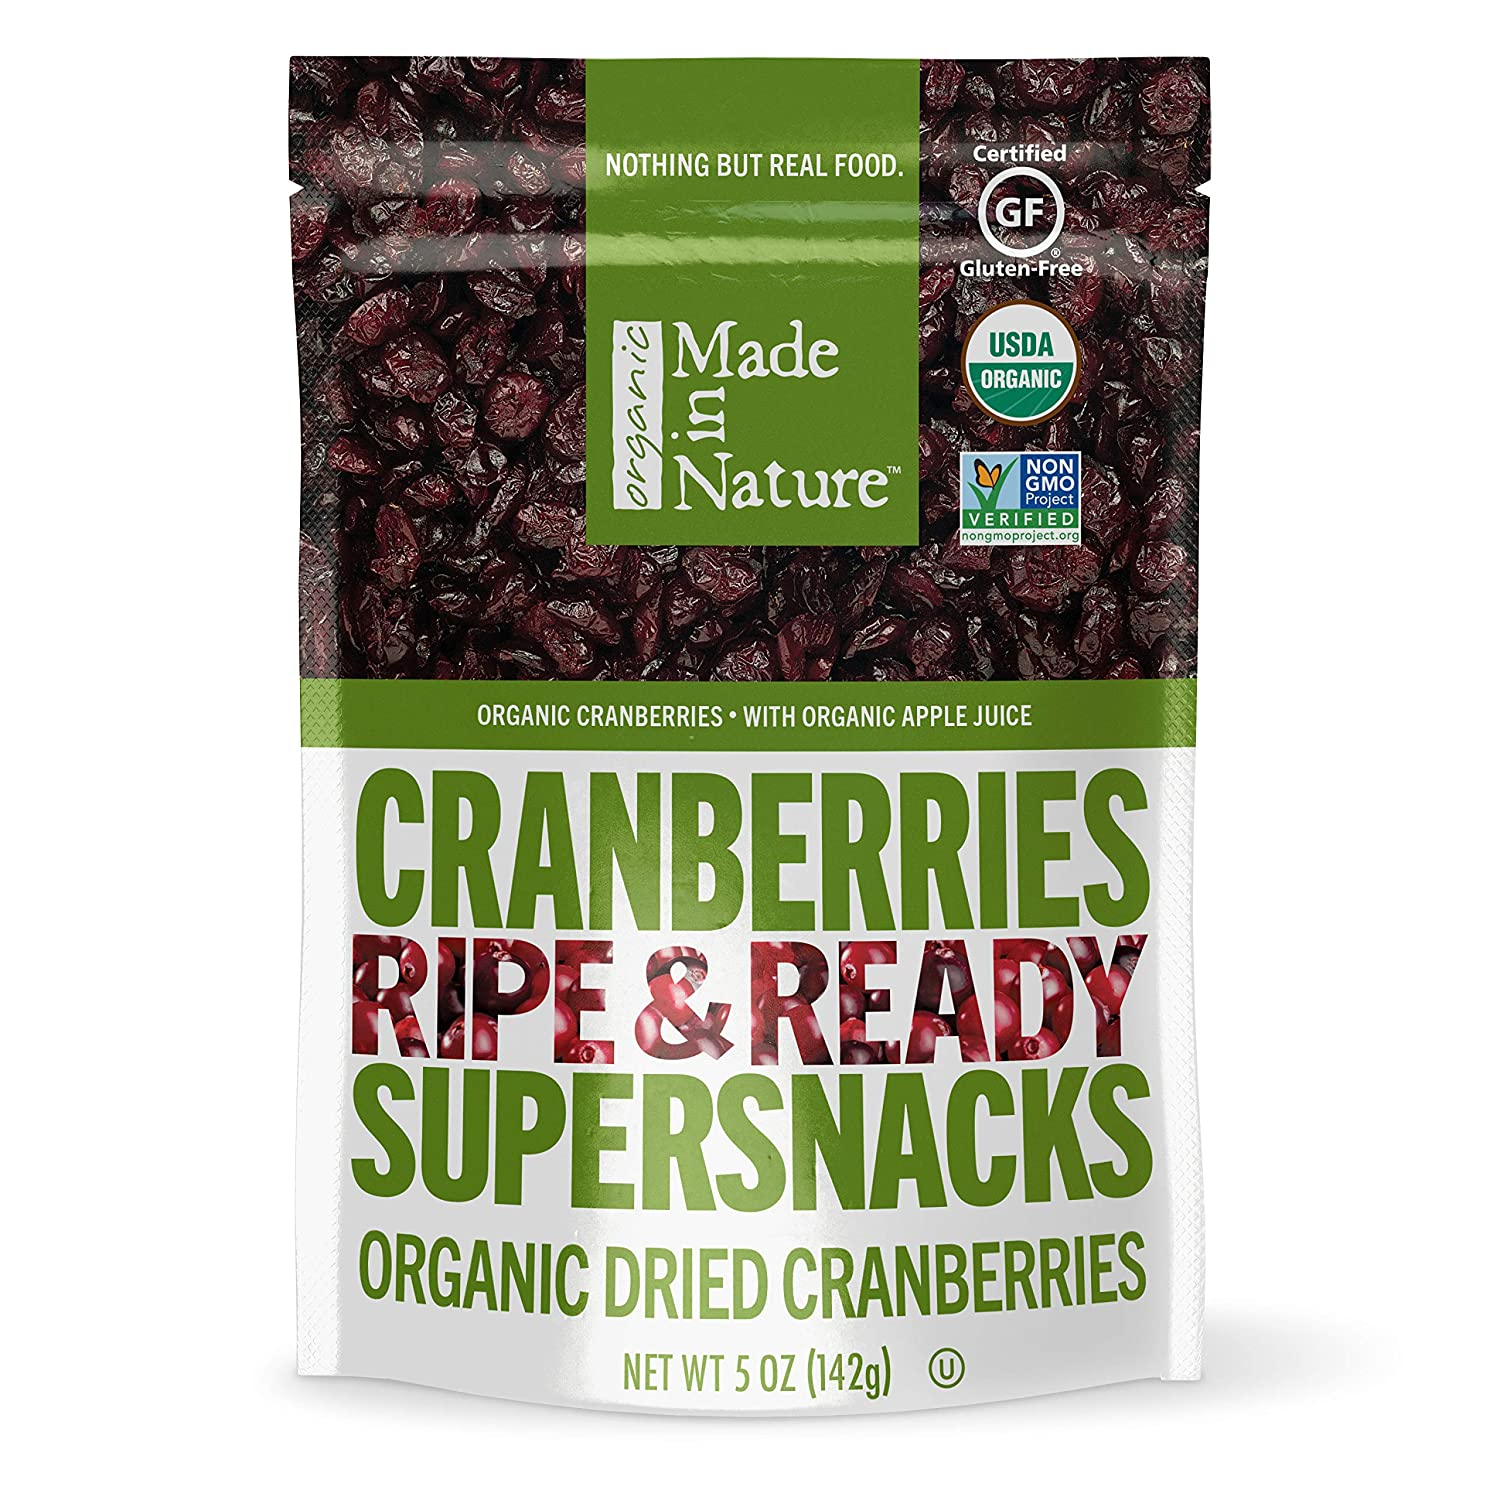 Made in Nature Organic Dried Fruit, Cranberries, 5oz Bags (6 Count) – Vegan, Non-GMO, Unsulfured